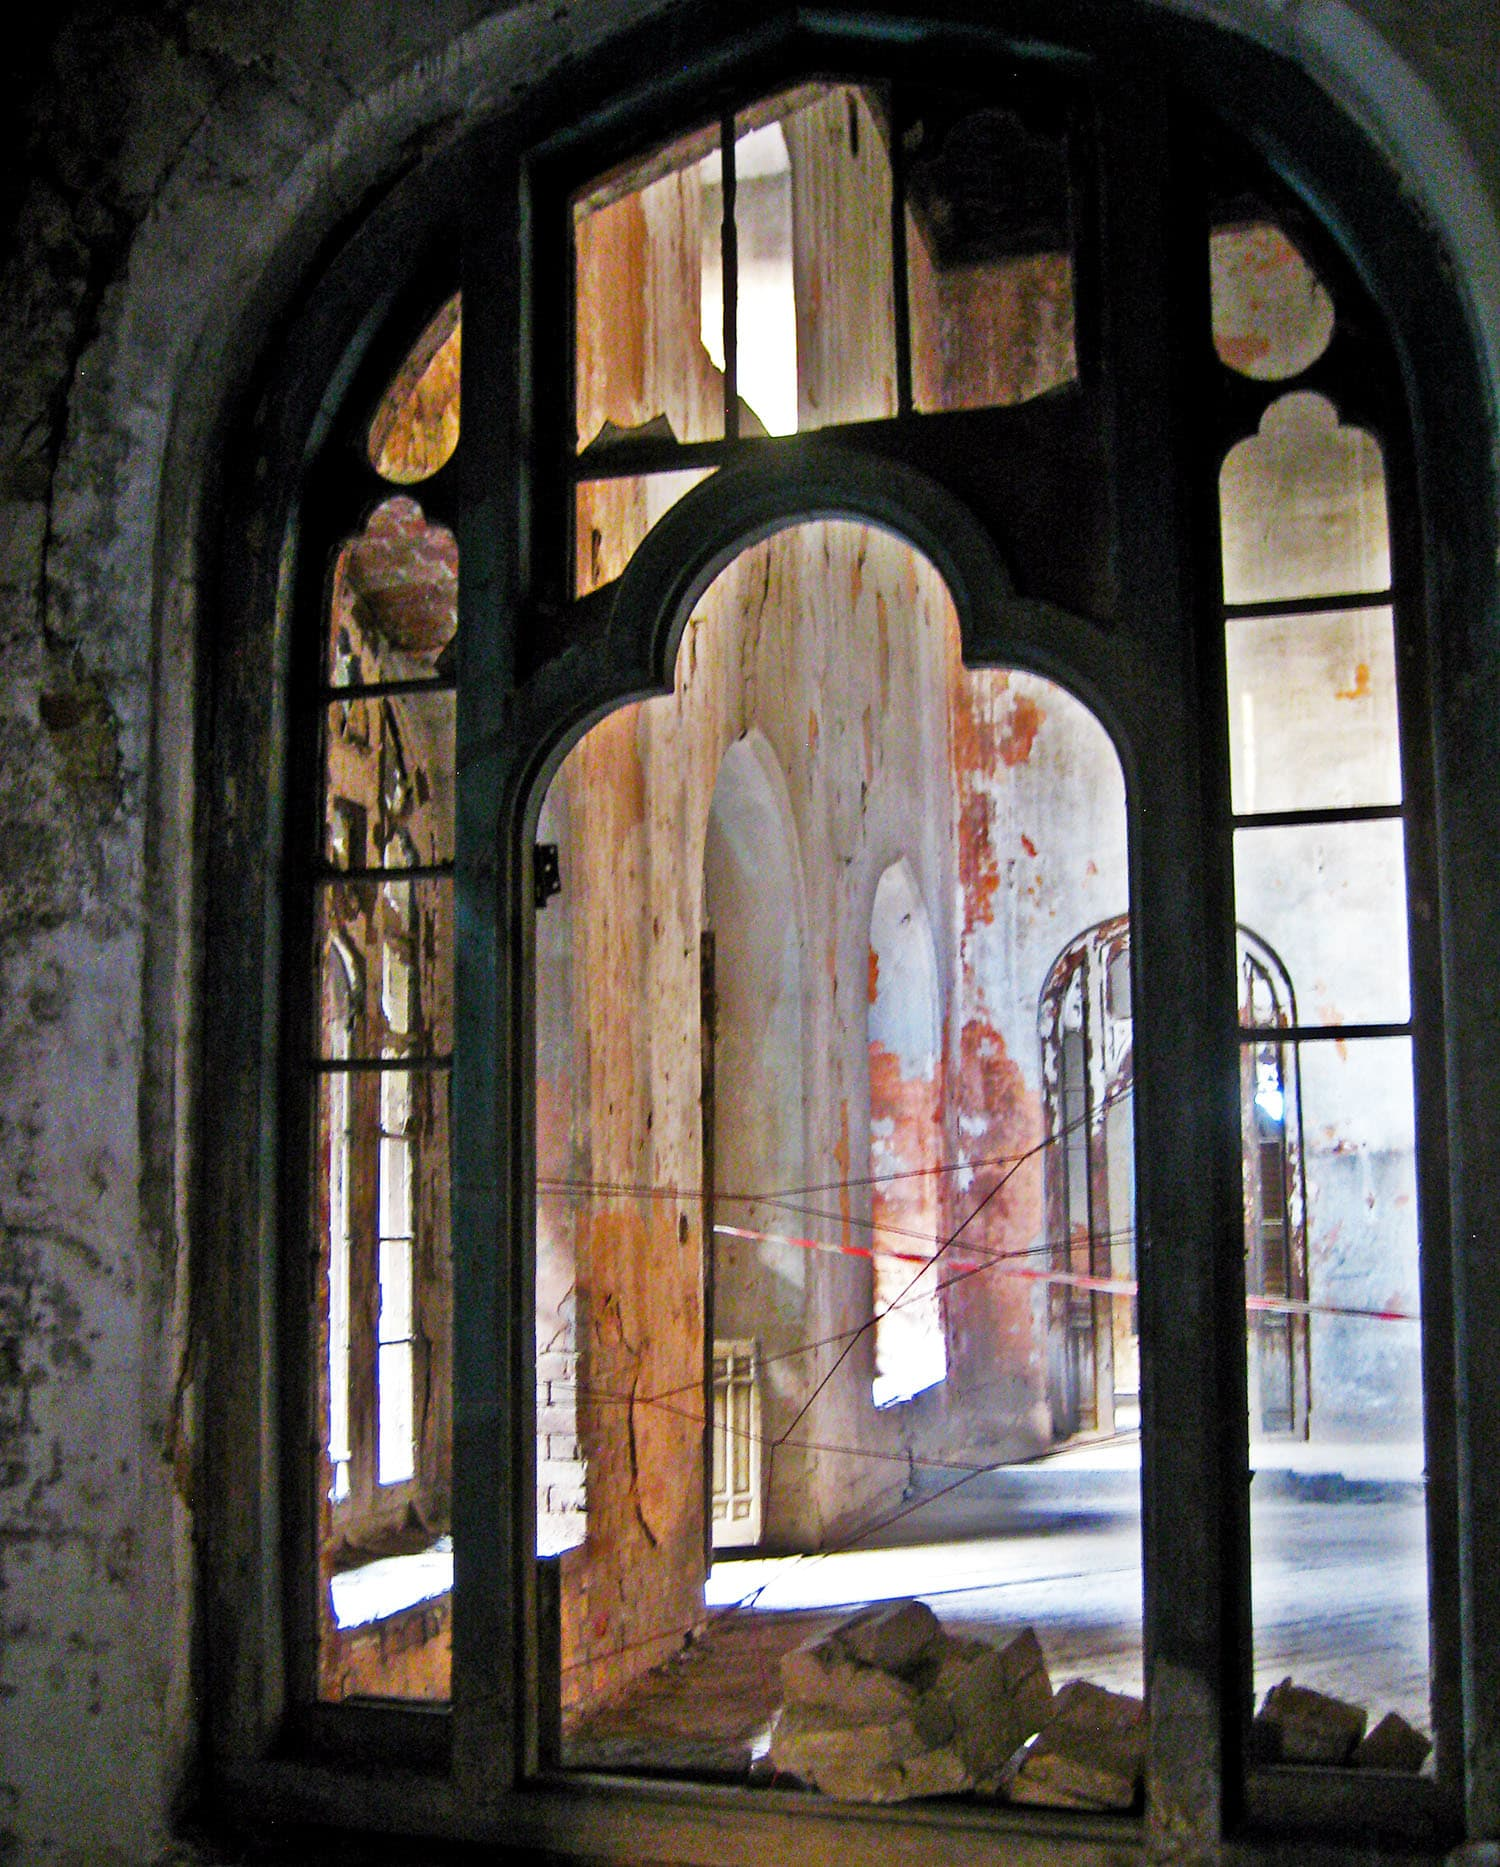 An archway in Darbar Mehal, which still has hints of its past architectural grandeur.